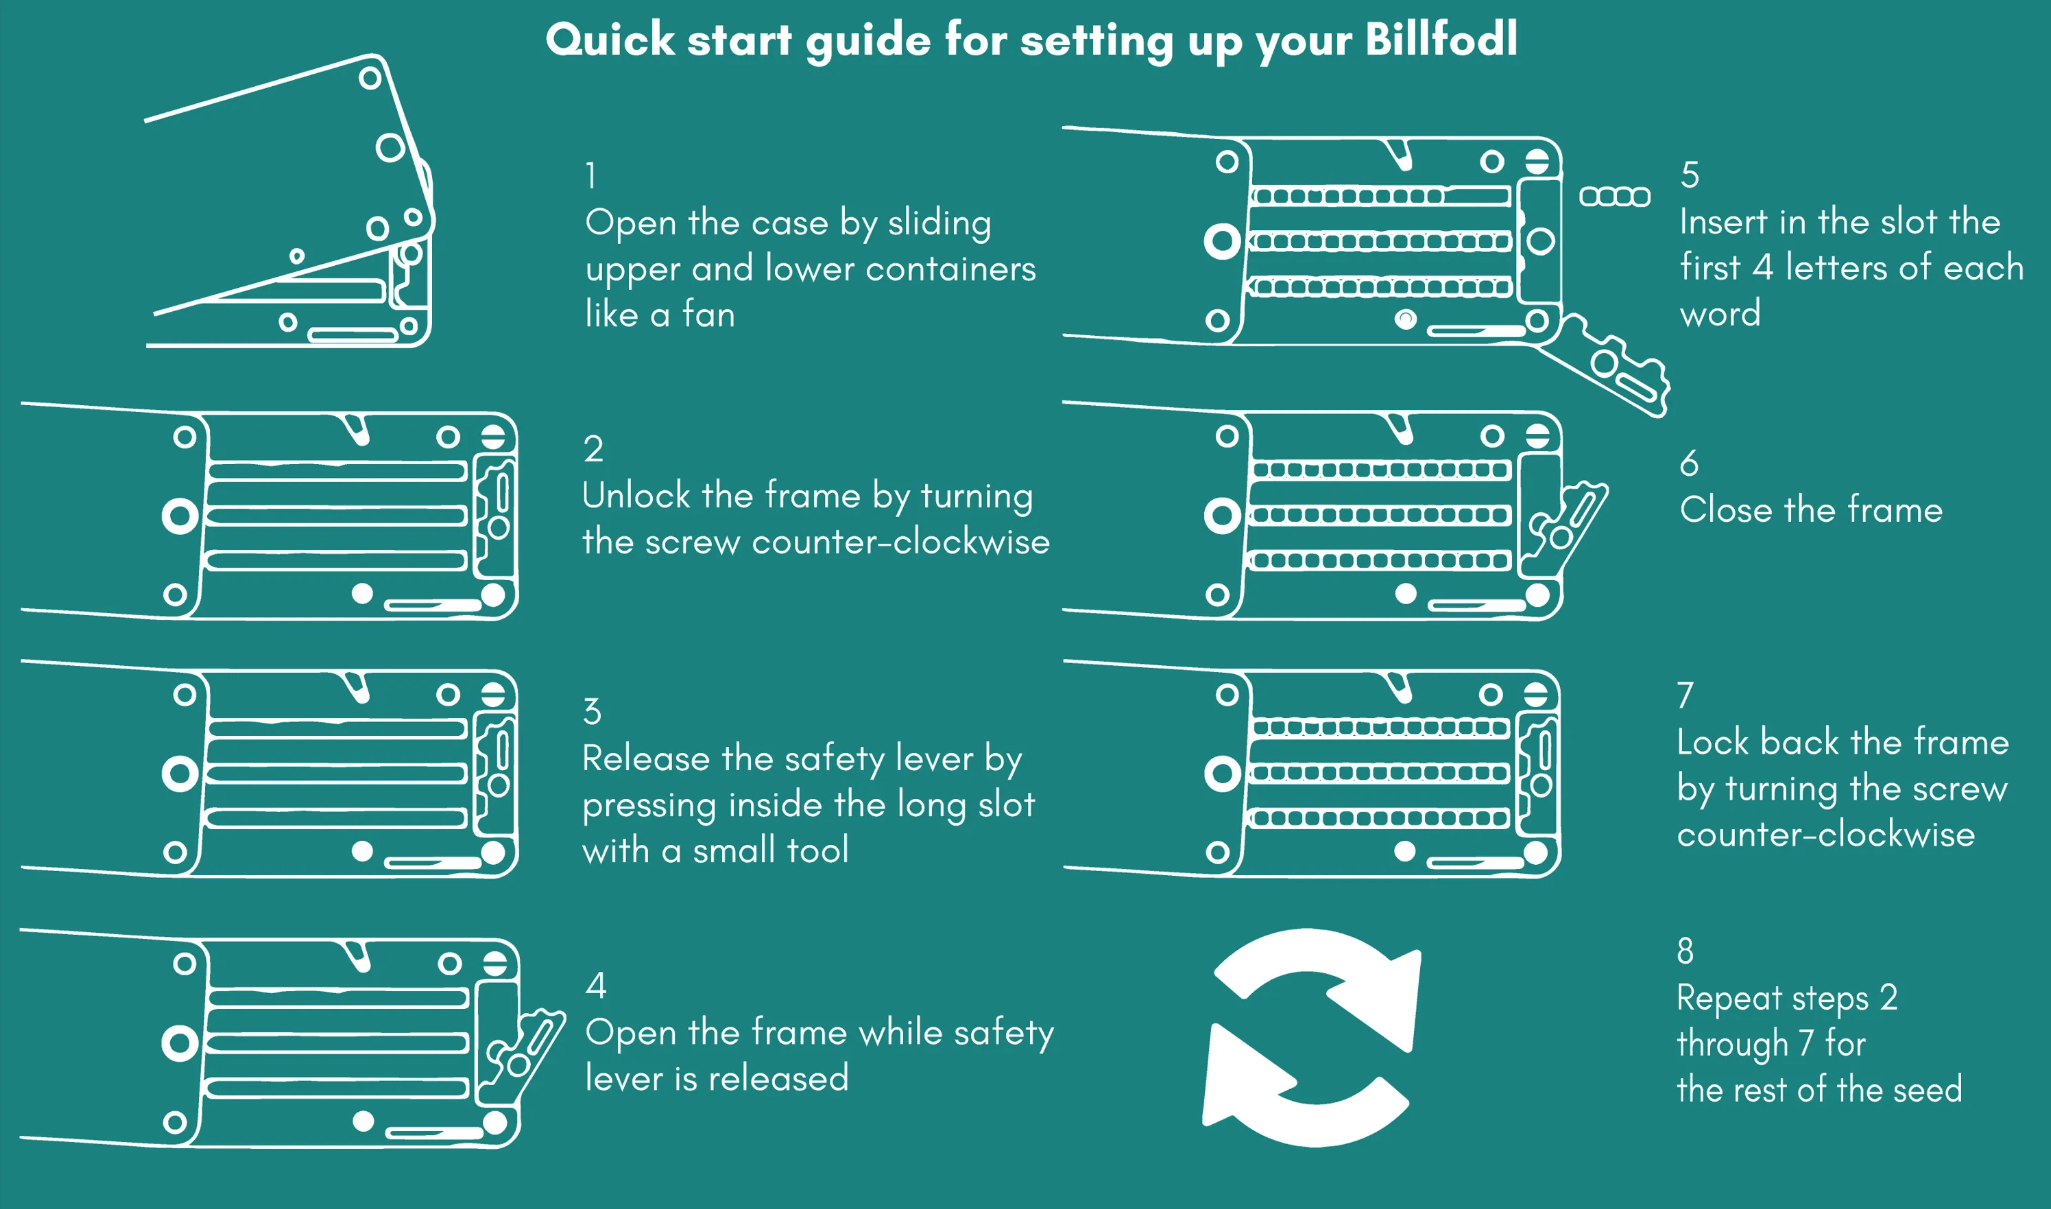 Billfodl Setup Guide